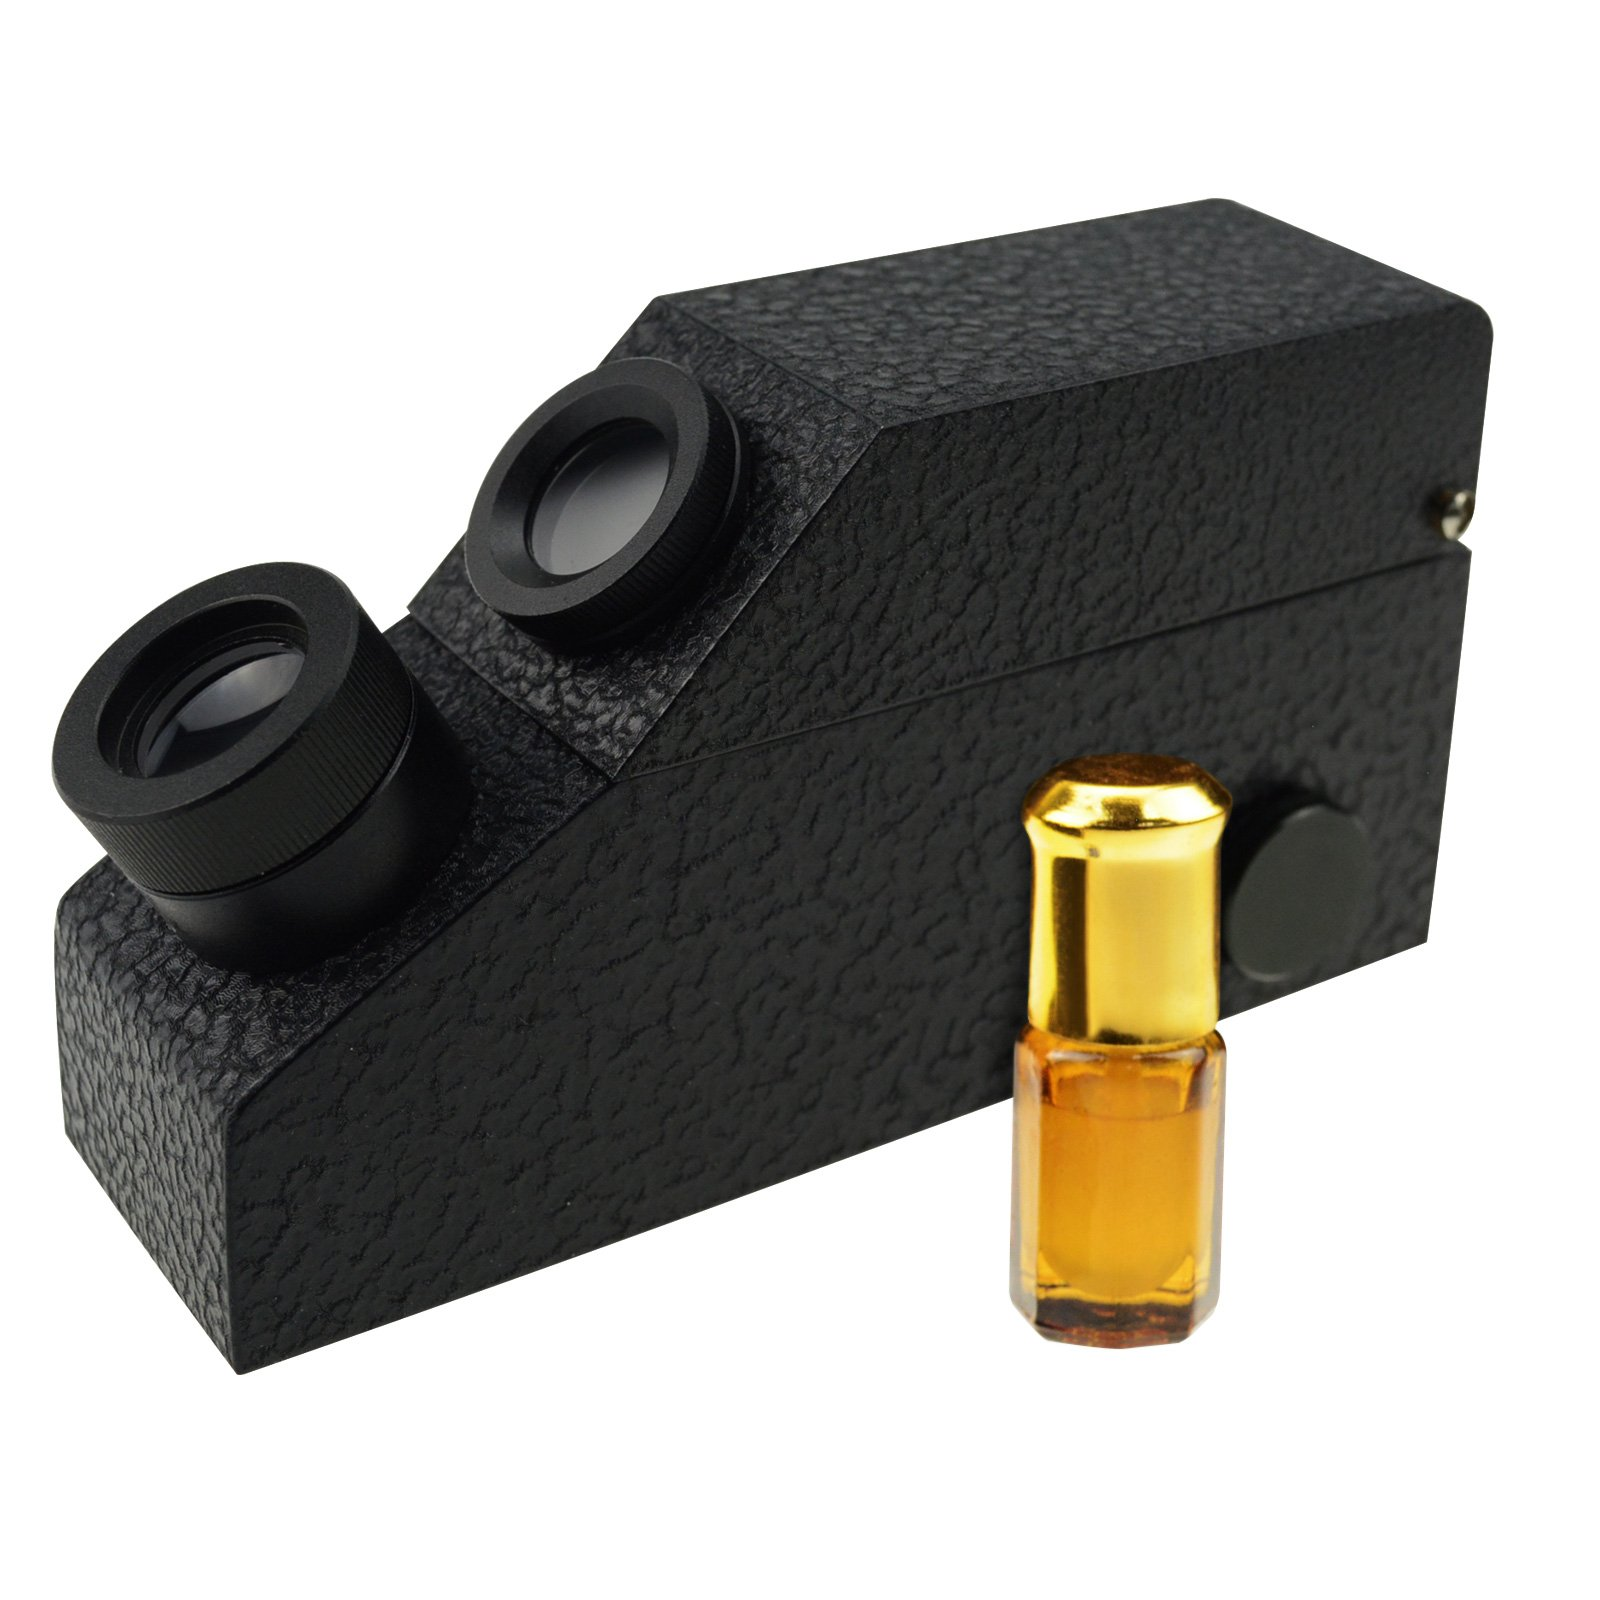 Gain Express Gem Gemological Gemelogy Refractometer with Built-in LED Light + RI Oil + 1.30-1.81 RI Range + 0.01 nD Scale Division by Gain Express (Image #9)